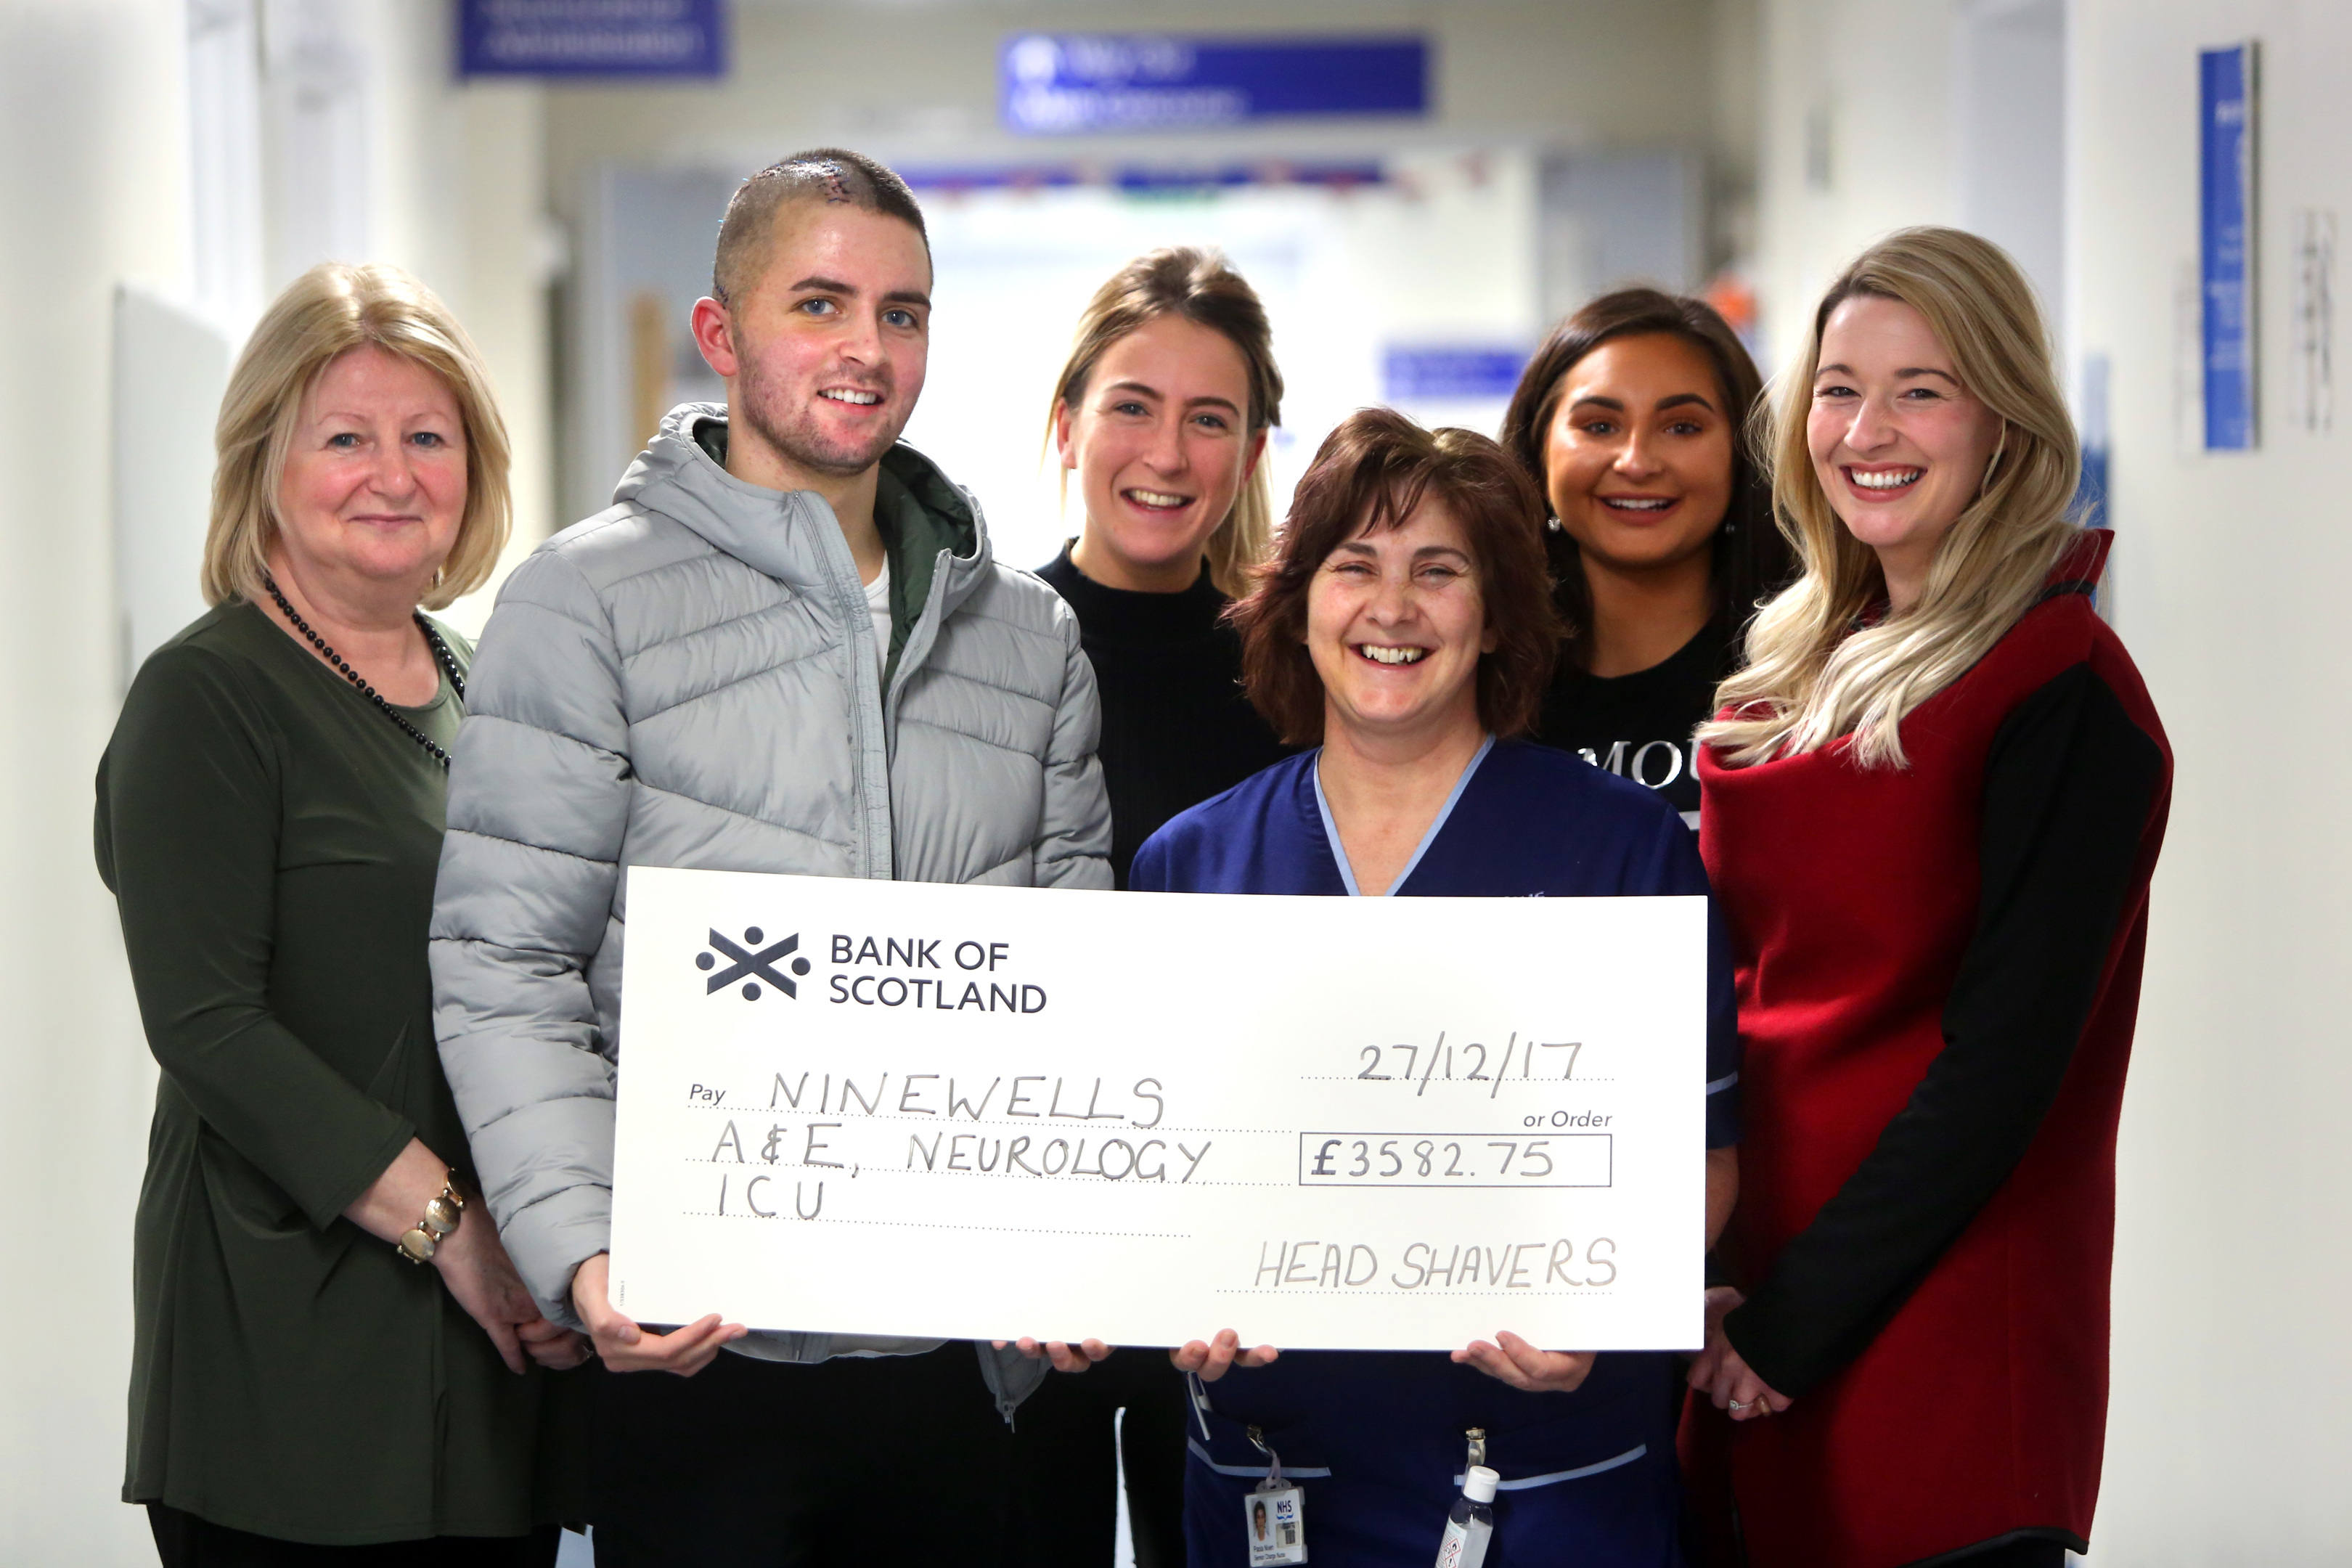 John Black hands over a cheque to charge nurse Paola Niven. Also pictured (from left to right) mum June Black, sister Jodie Black, John's girlfriend Joanna Taylor and sister Jenna Black.